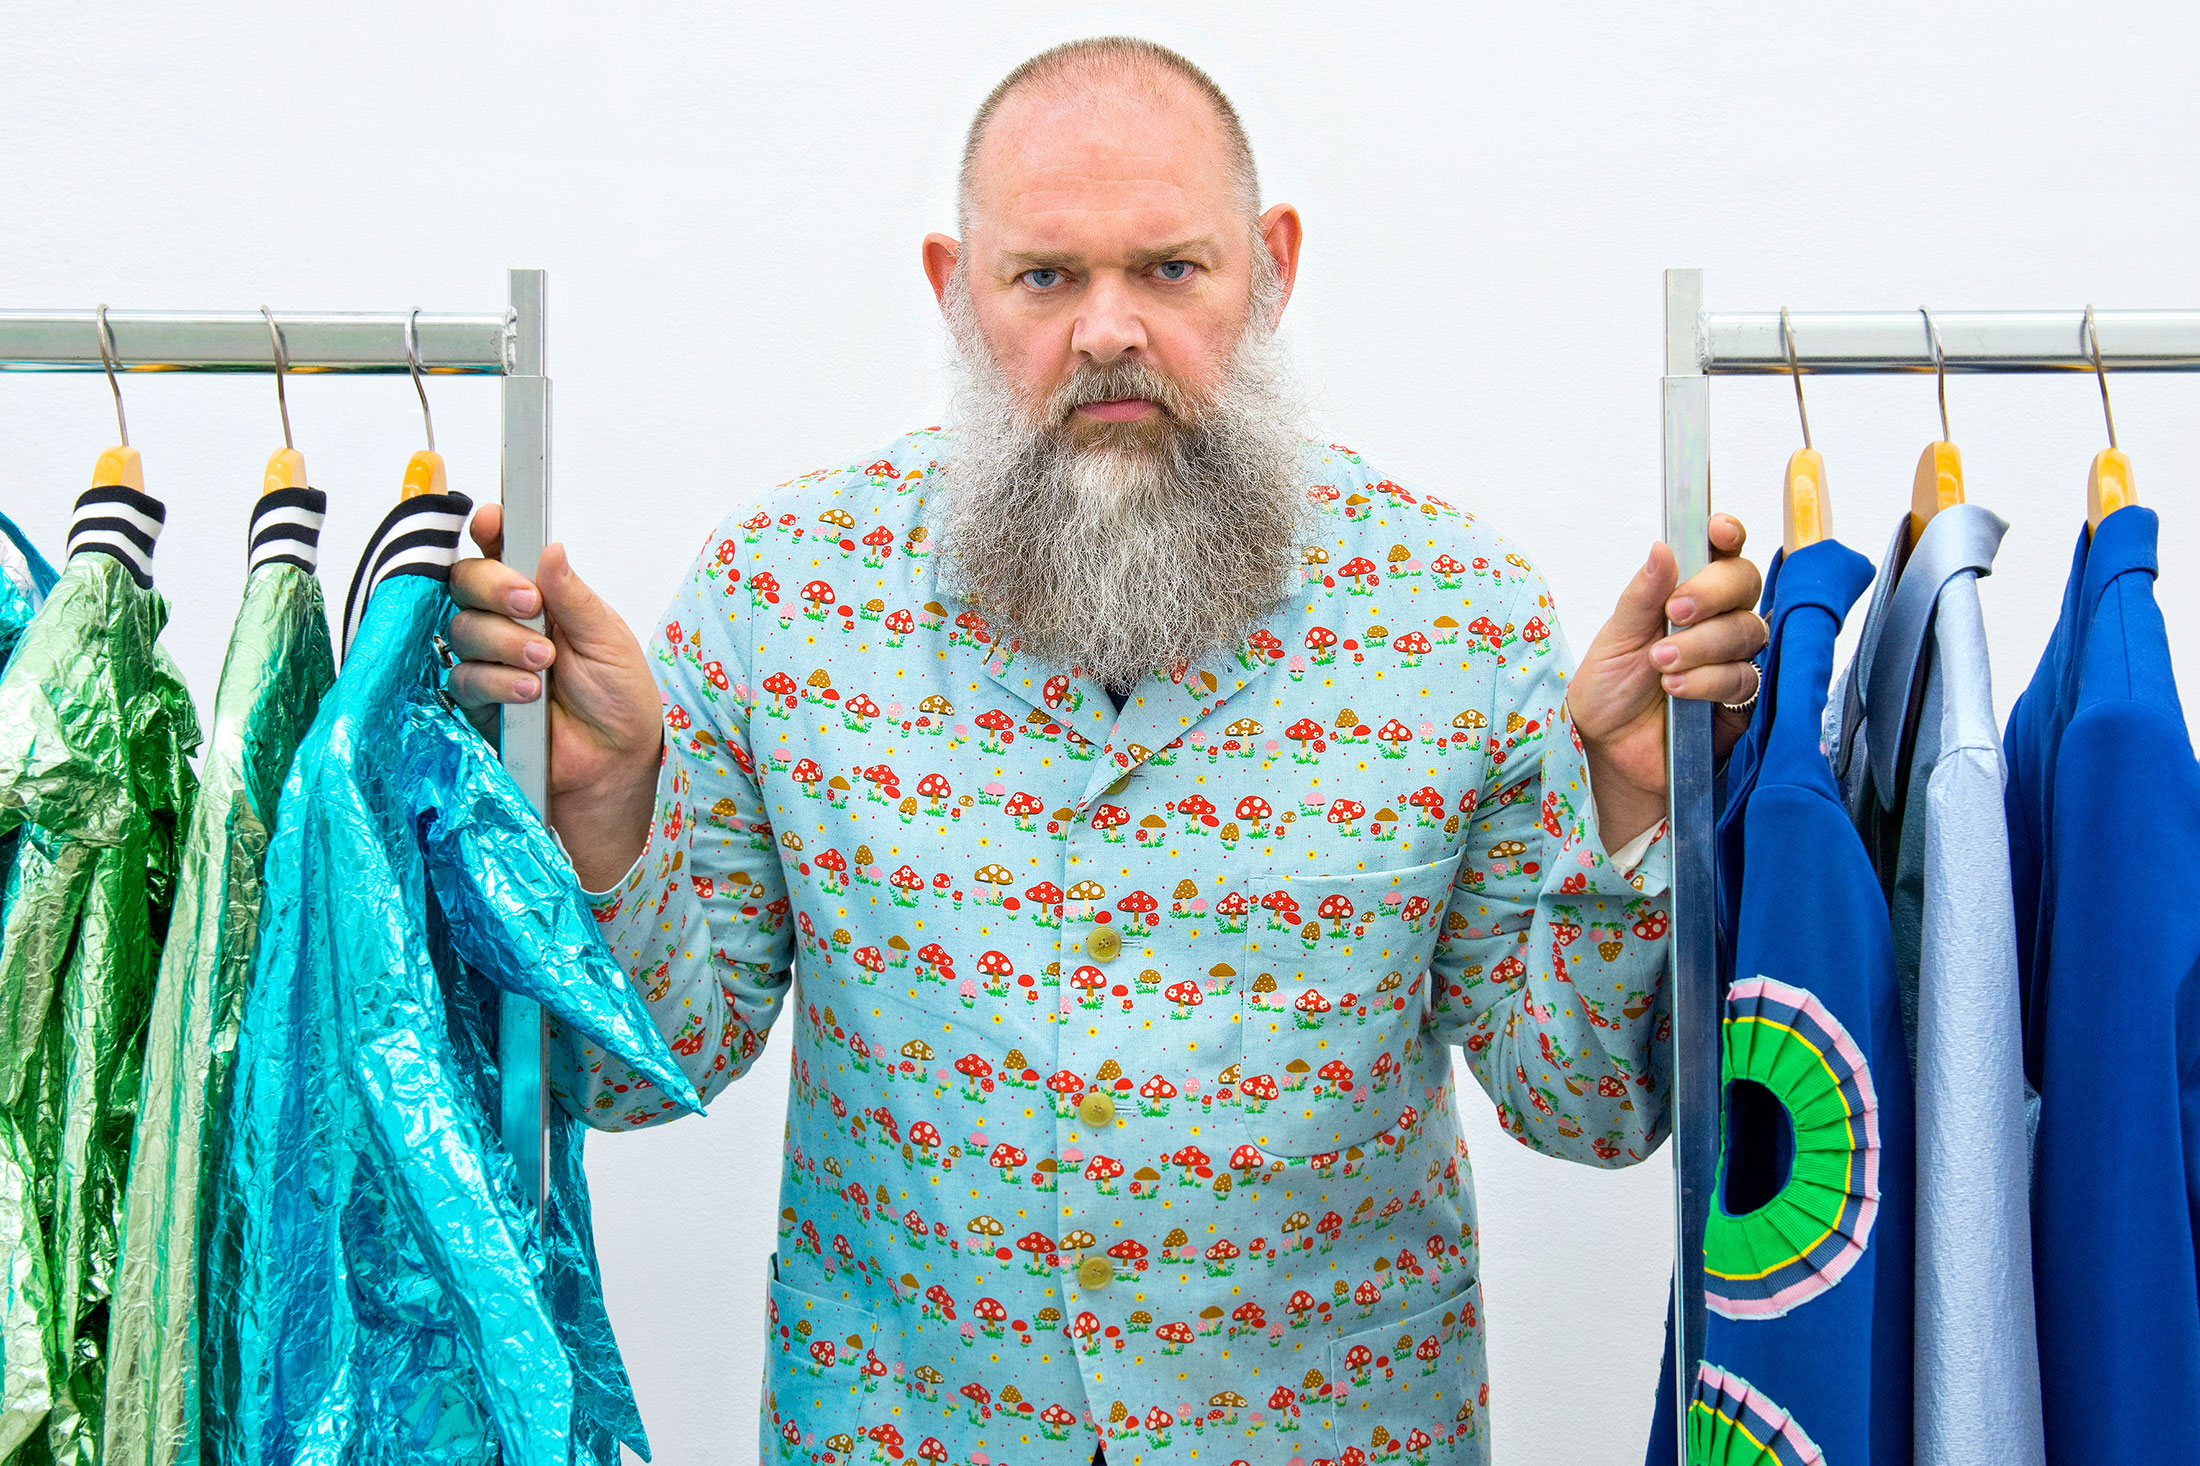 Van Beirendonck among the clothing racks in his showroom. (Photo: Celine Clanet/Surface)